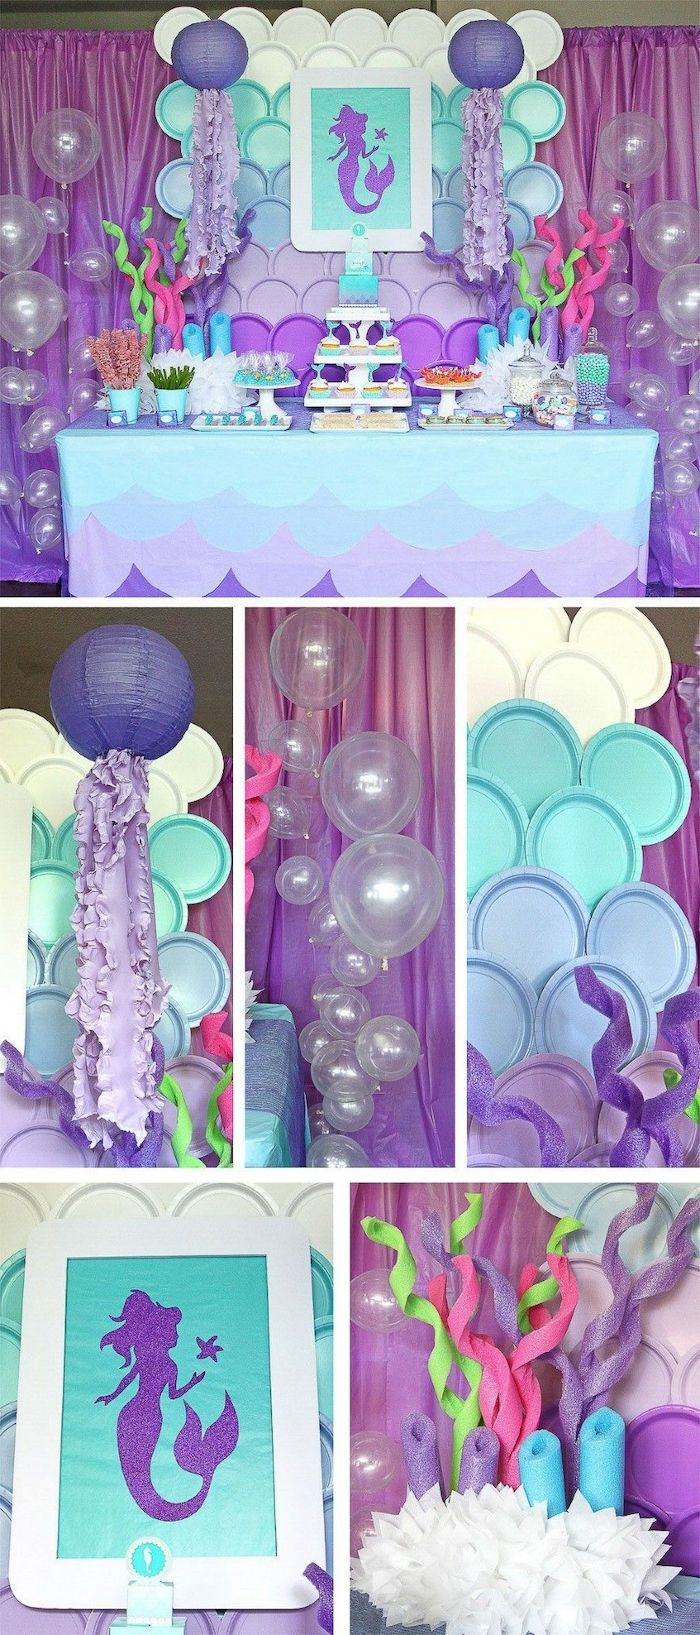 mermaid theme, baby shower centerpieces, purple and turquoise decor, dessert table, transparent balloons